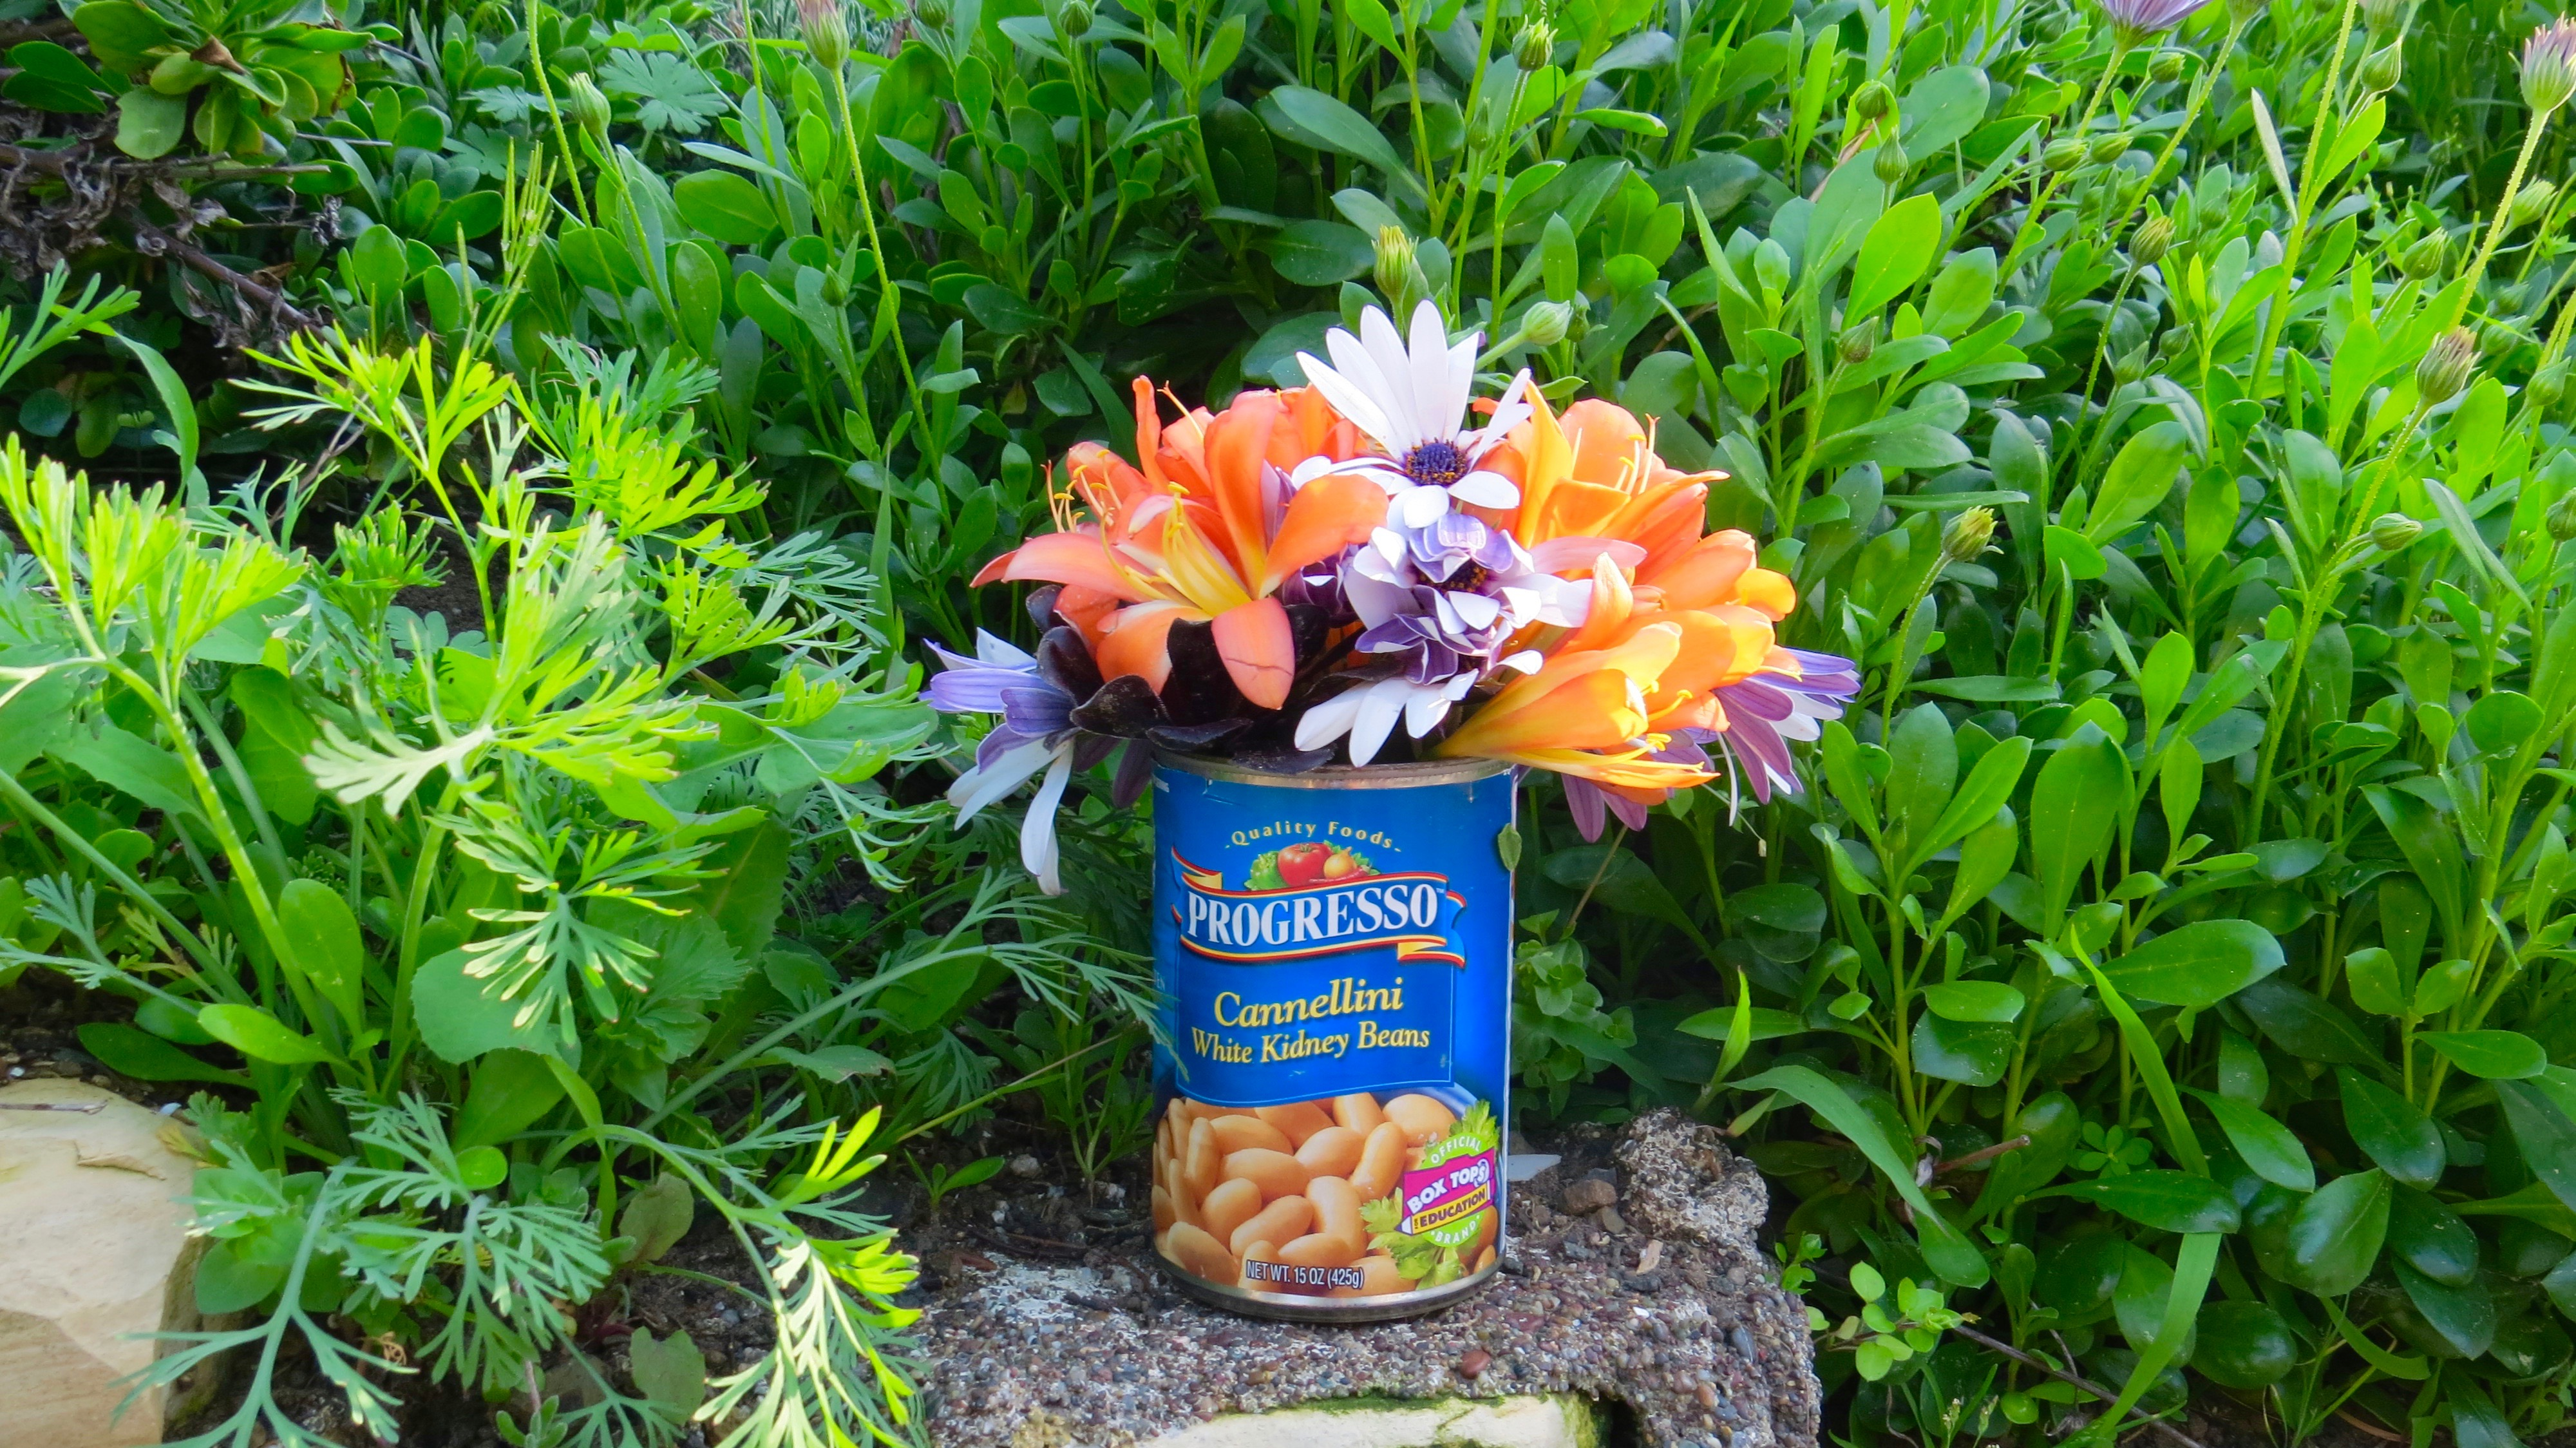 My yard is a flower shop but no container in sight around here.  So I retrieved my cannellini can from the bin and made my own vessel for my bouquet.